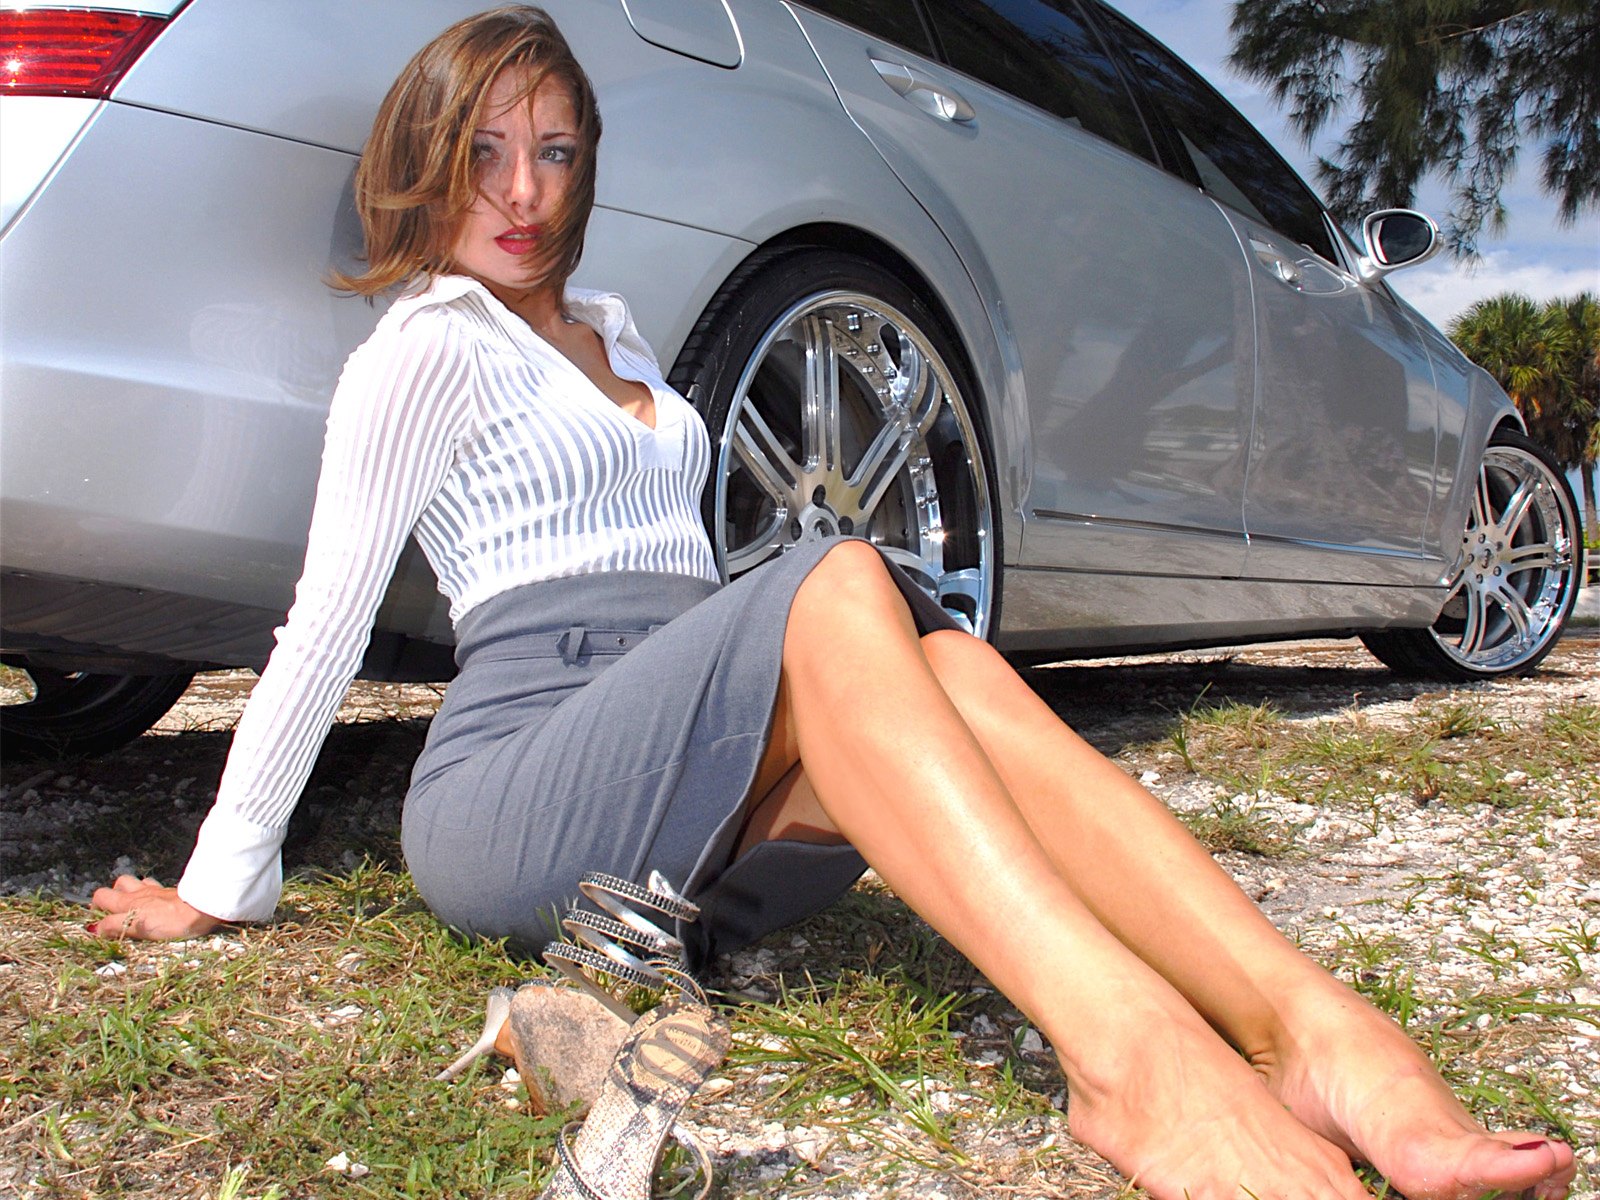 Girls with Cars 090